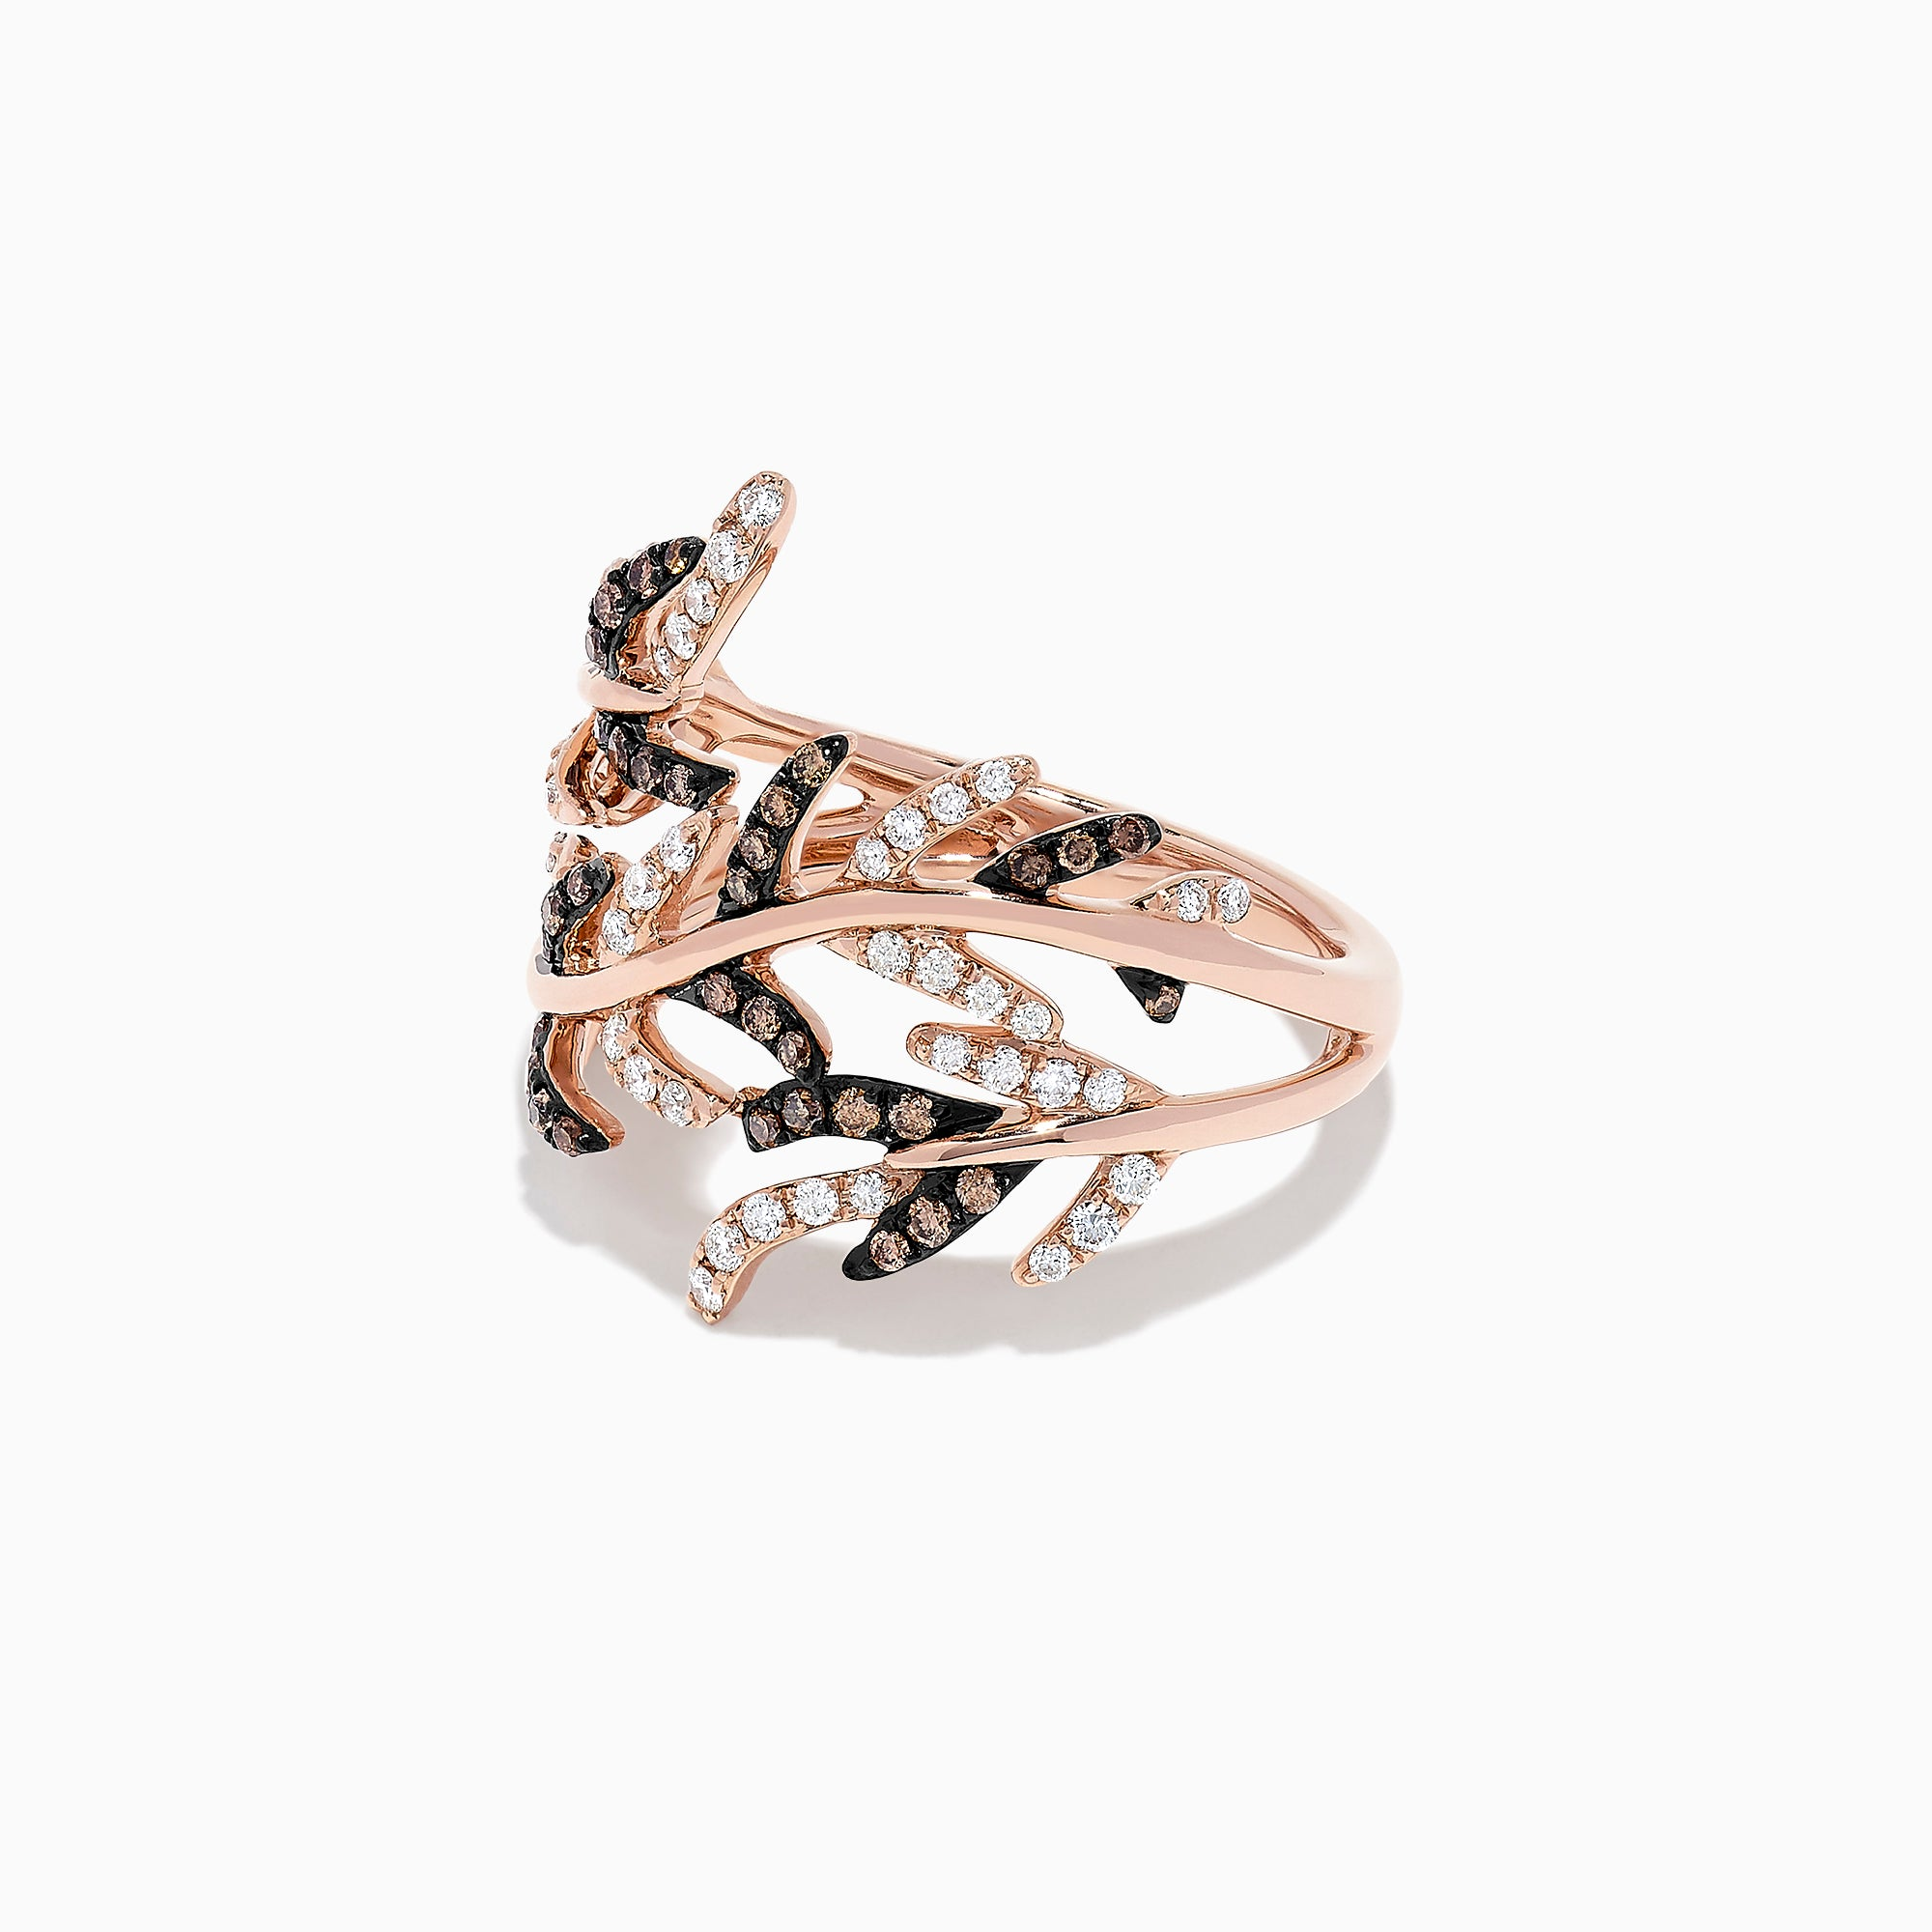 Effy Espresso 14K Rose Gold Cognac and White Diamond Ring, 0.62 TCW